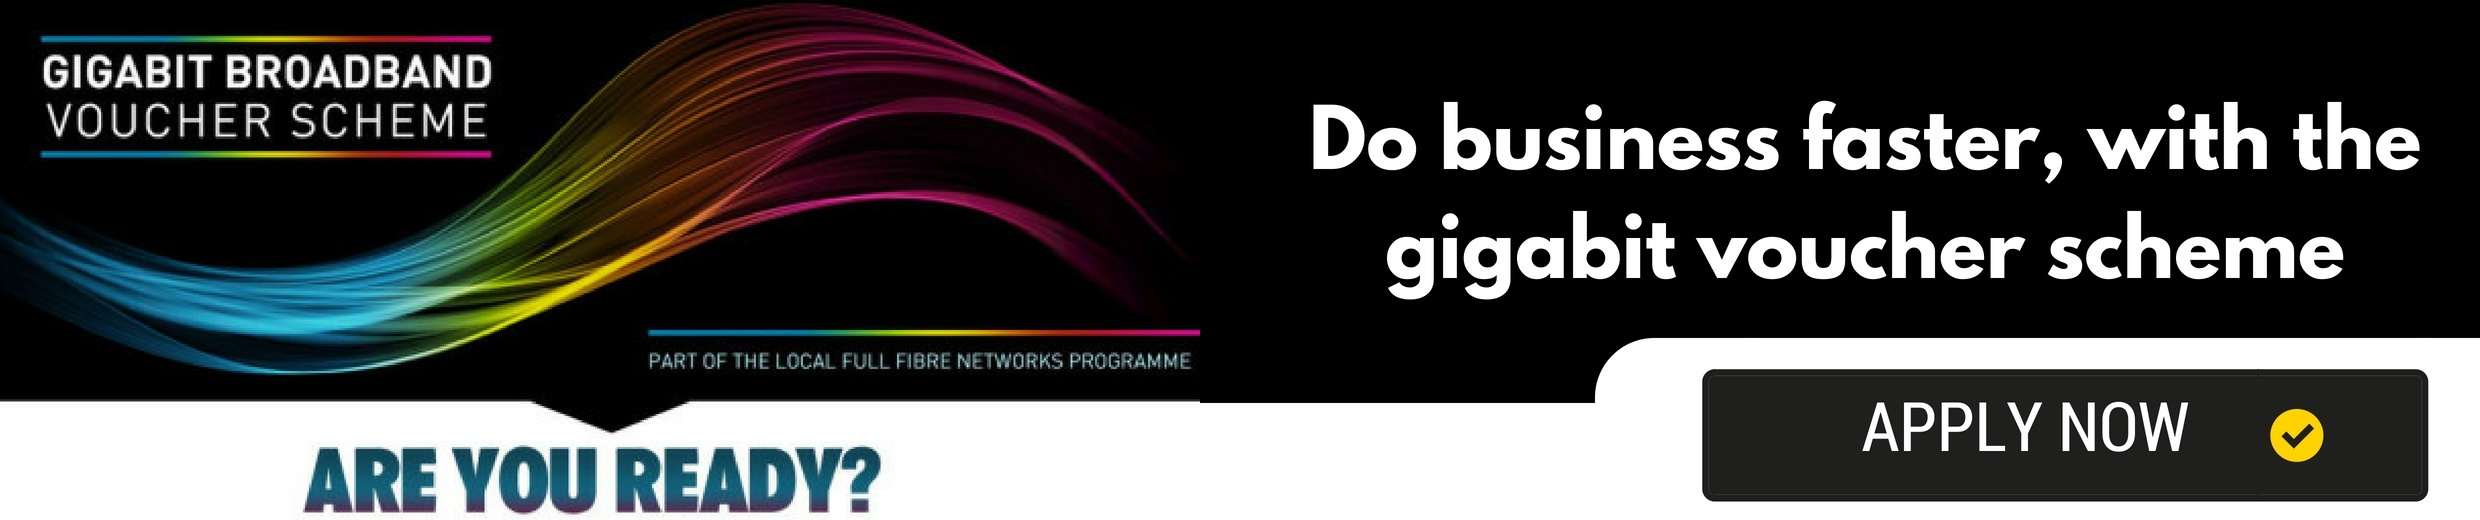 Find out if you can benefit from the gigabit voucher scheme